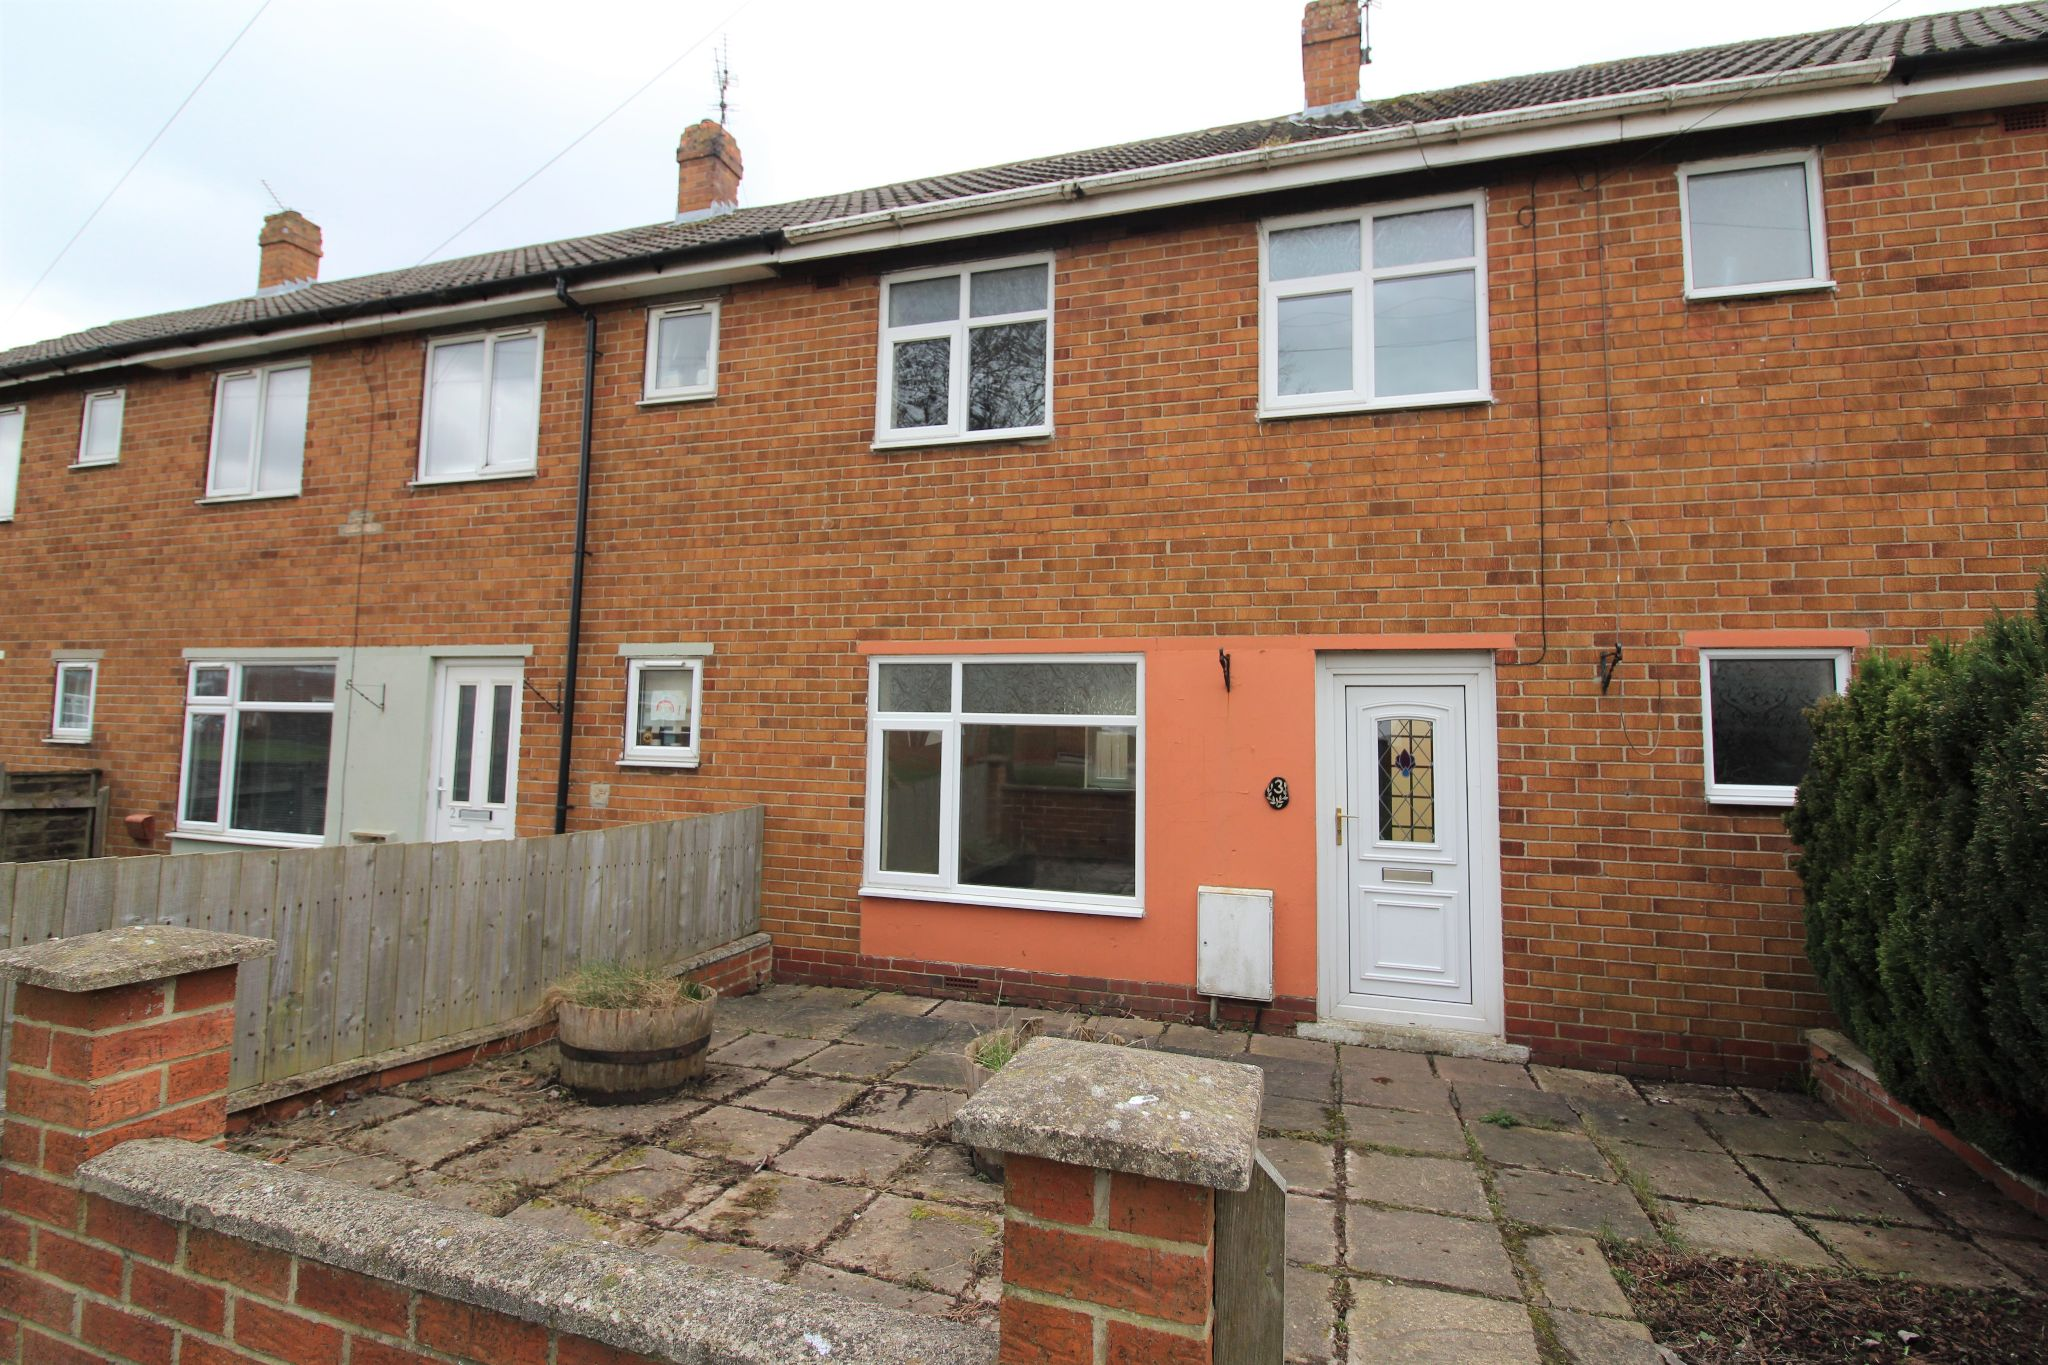 2 bedroom mid terraced house Let in Shildon - Photograph 1.